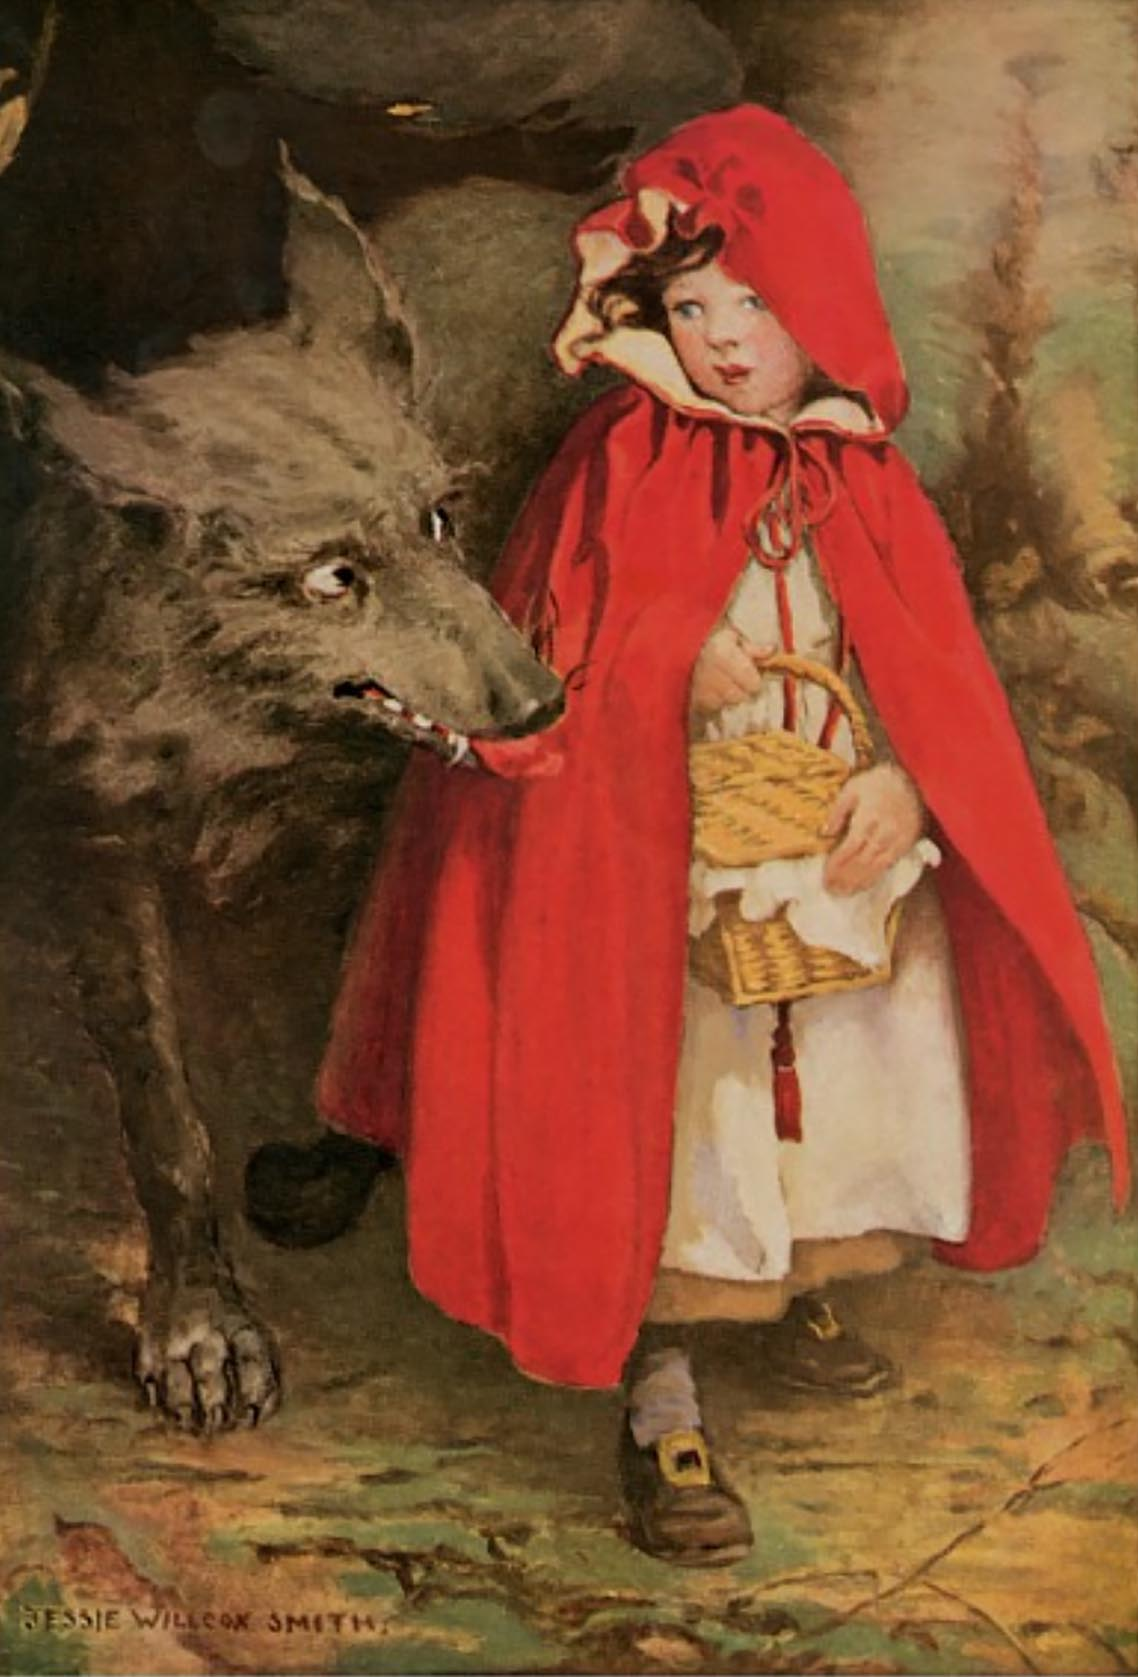 Little Red Riding Hood. Illustrated by Jessie Wilcox Smith